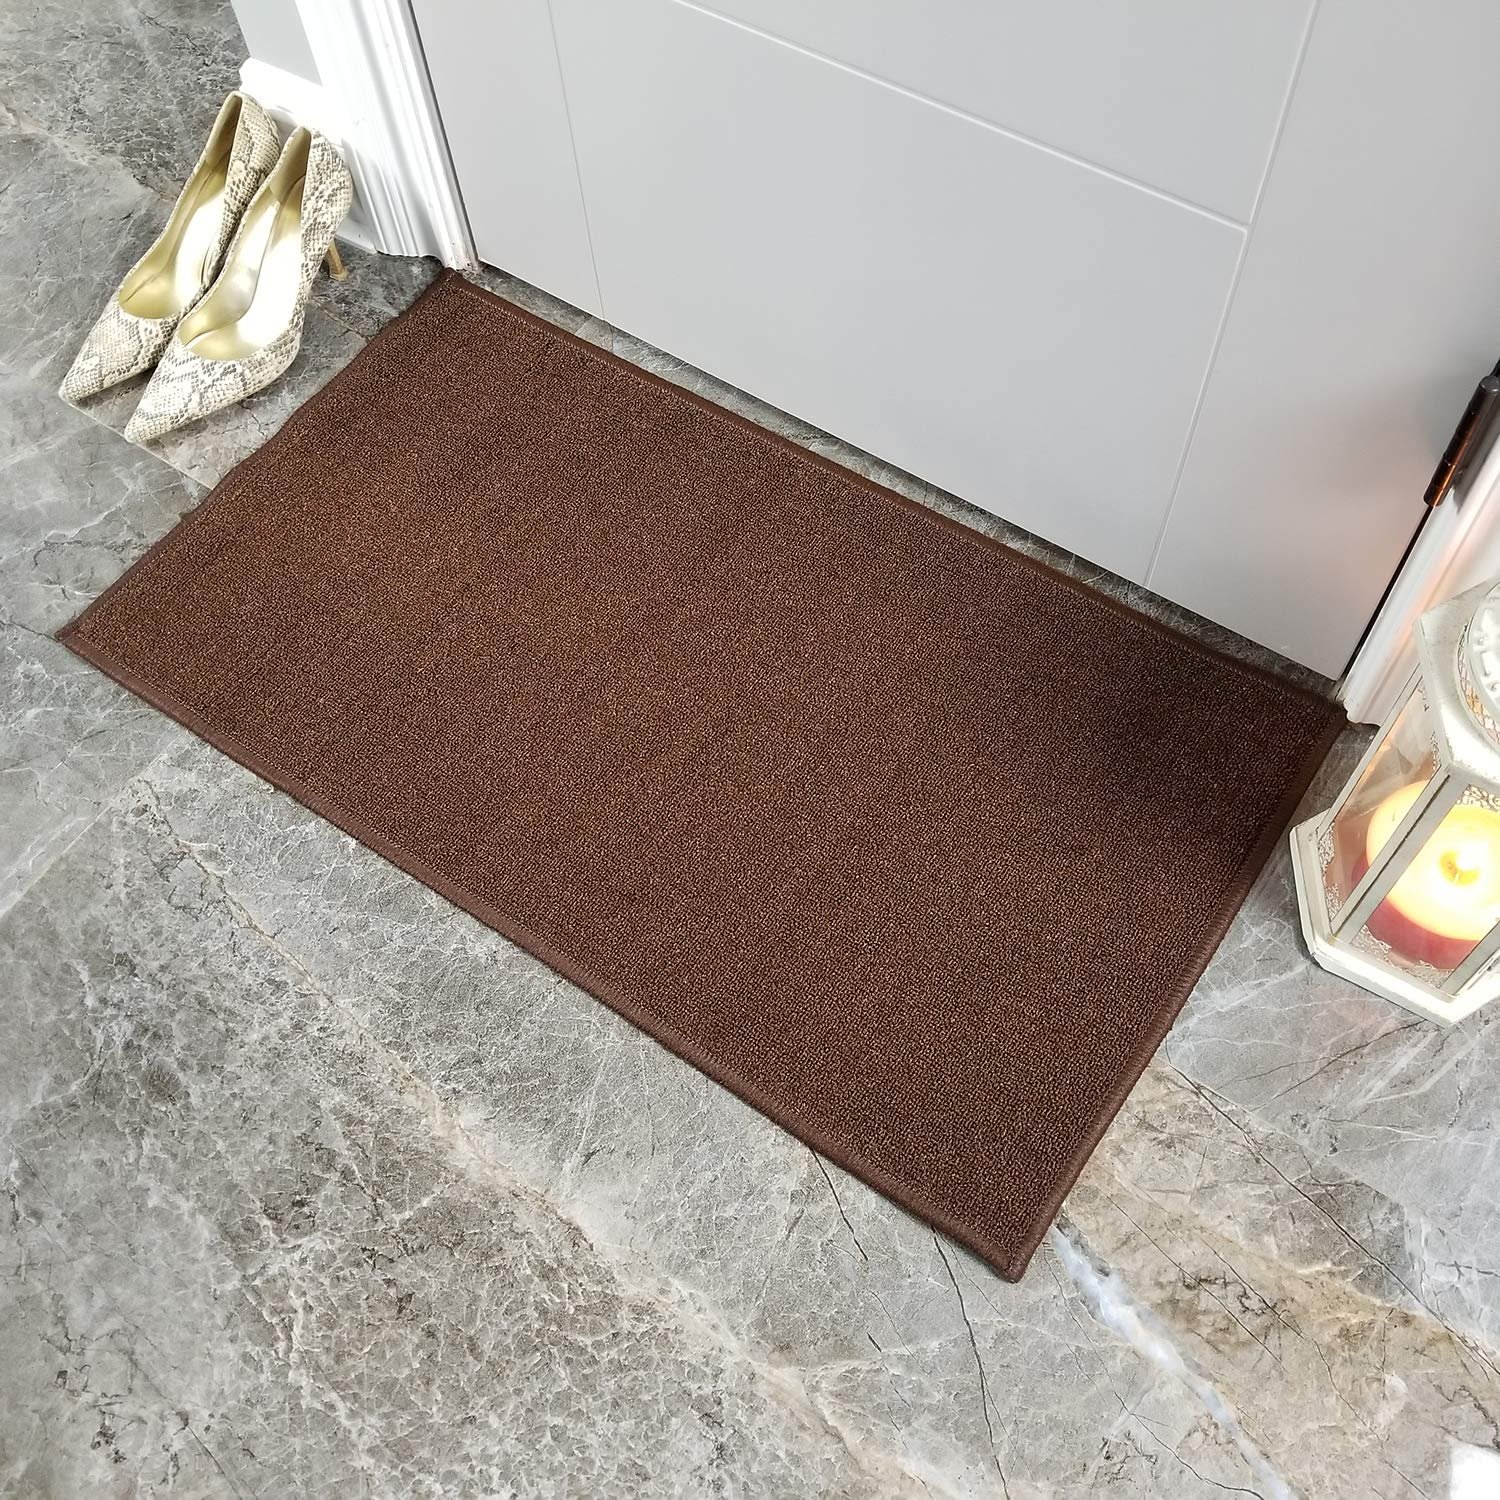 Buy 18 X 31 Brown Anti Bacterial Rubber Back Doormat Non Skid Slip Rug 18 X31 Solid Brown Plain Color Interior Entrance Decorative Low Profile Modern Indoor Front Inside Kitchen Thin Floor Runner Door Mats For Home Online At Low Prices In